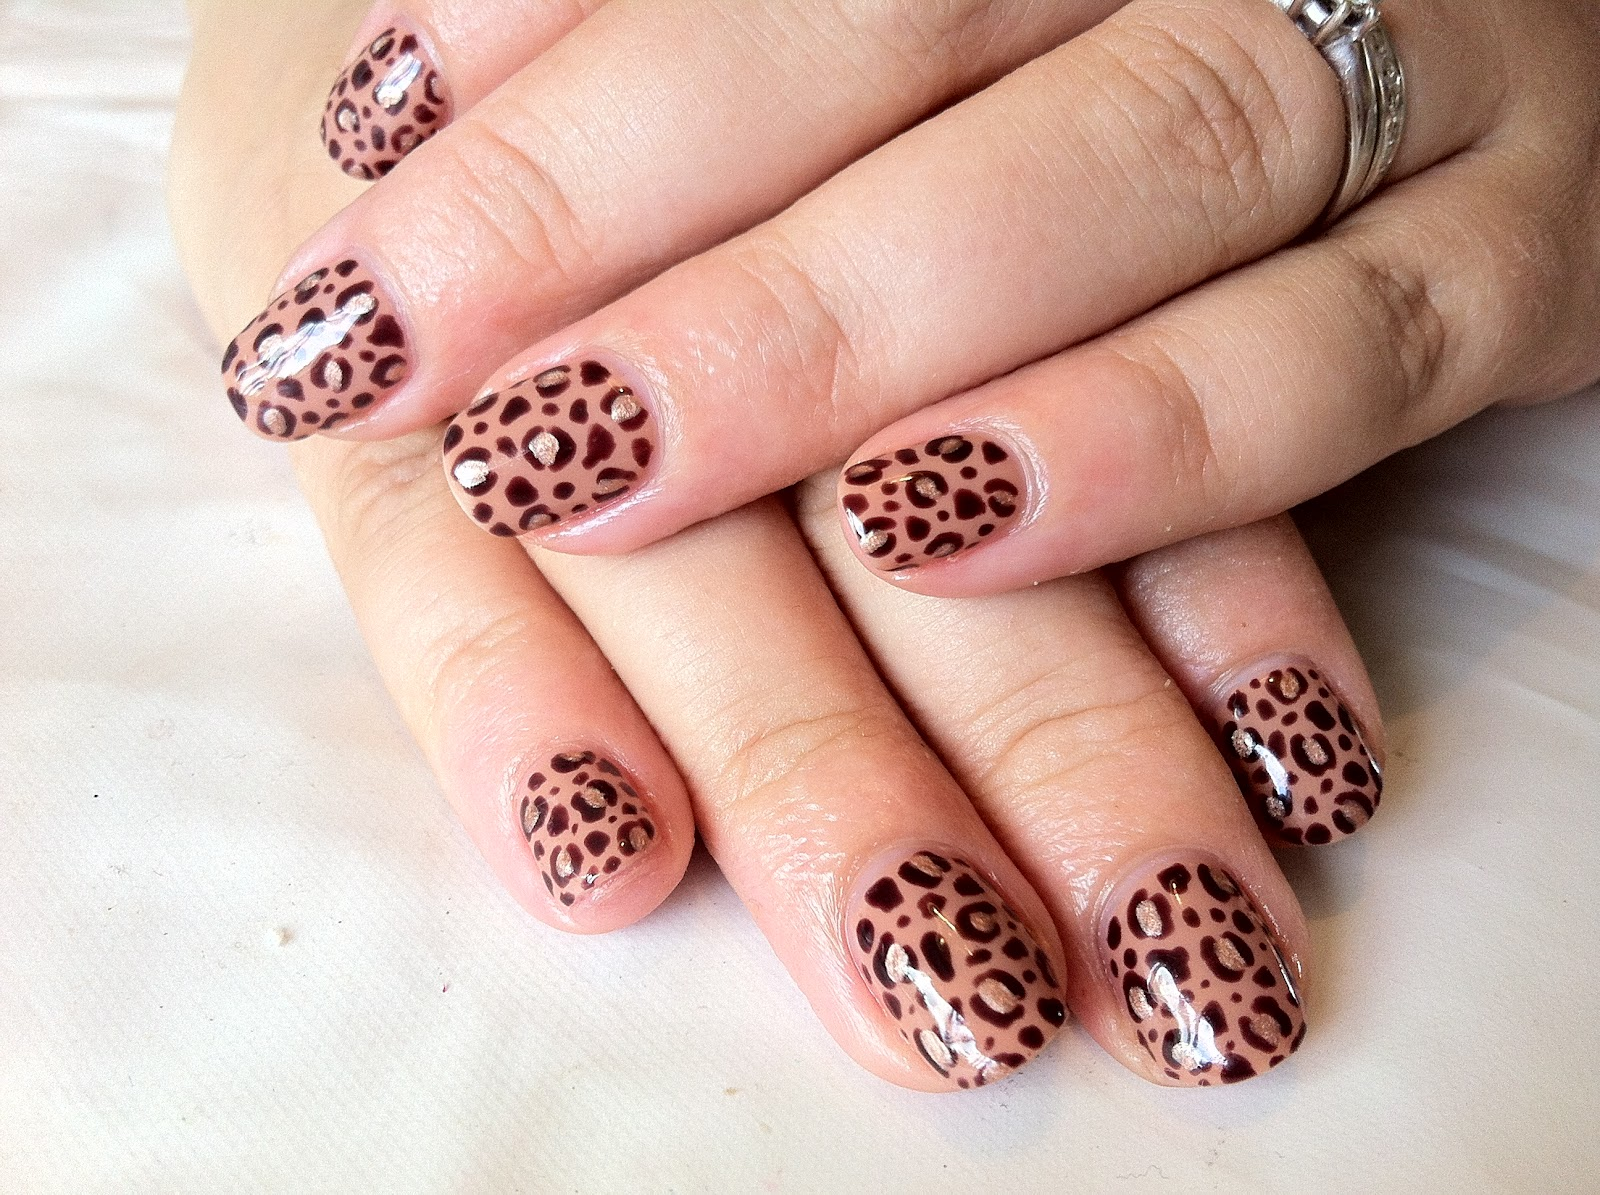 Brush up and Polish up!: CND Shellac Nail Art - Leopard Print in Cocoa